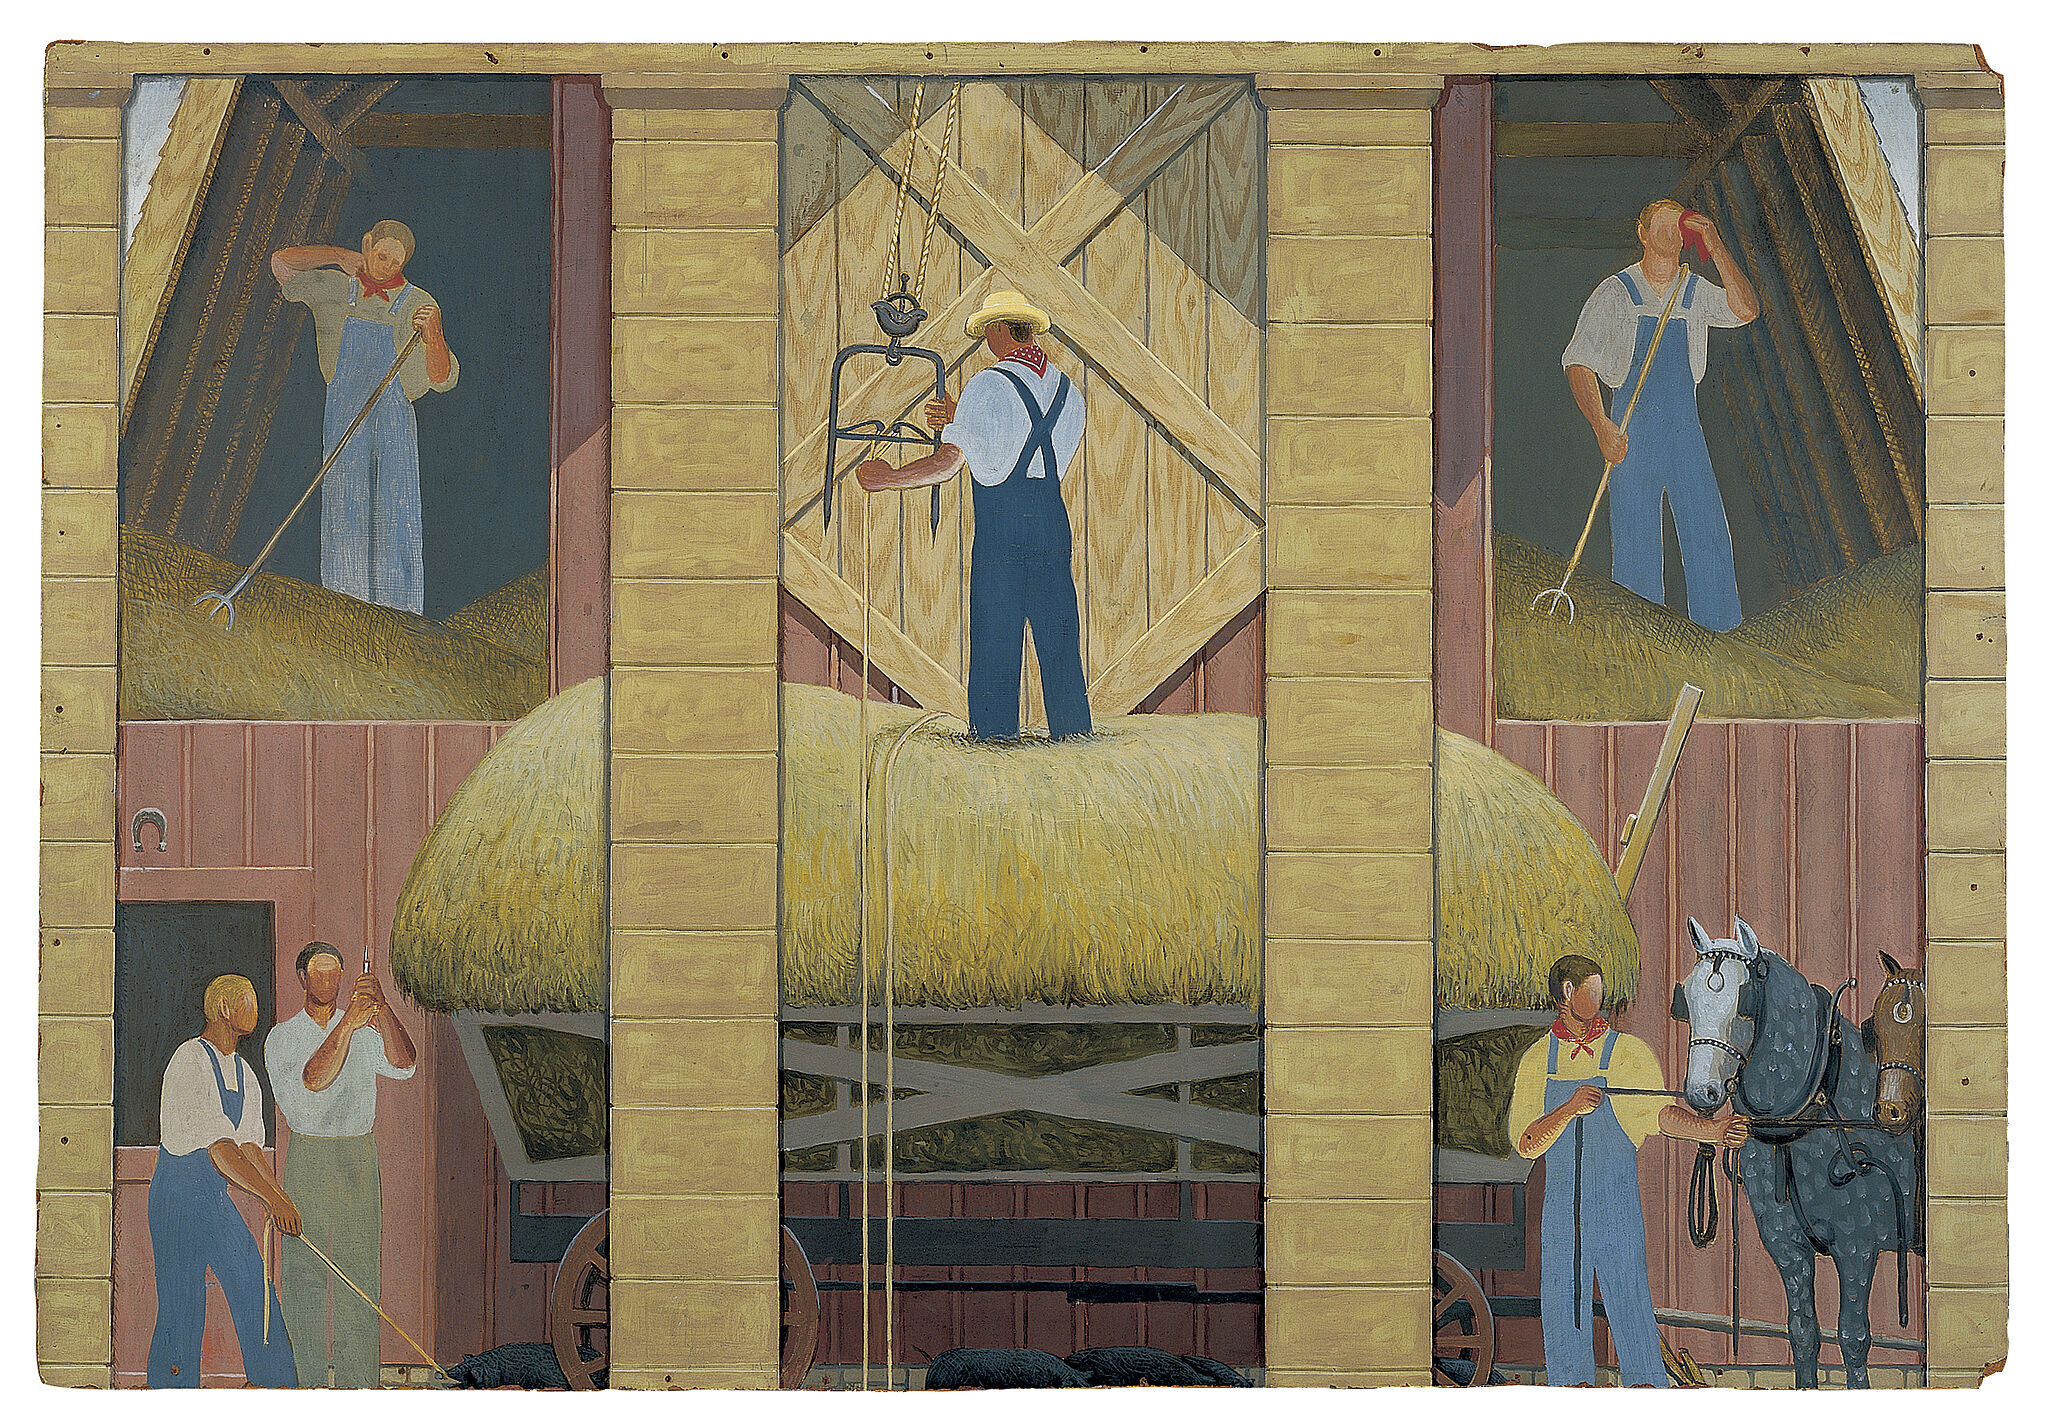 Three panel painting of men in various agricultural scenes.